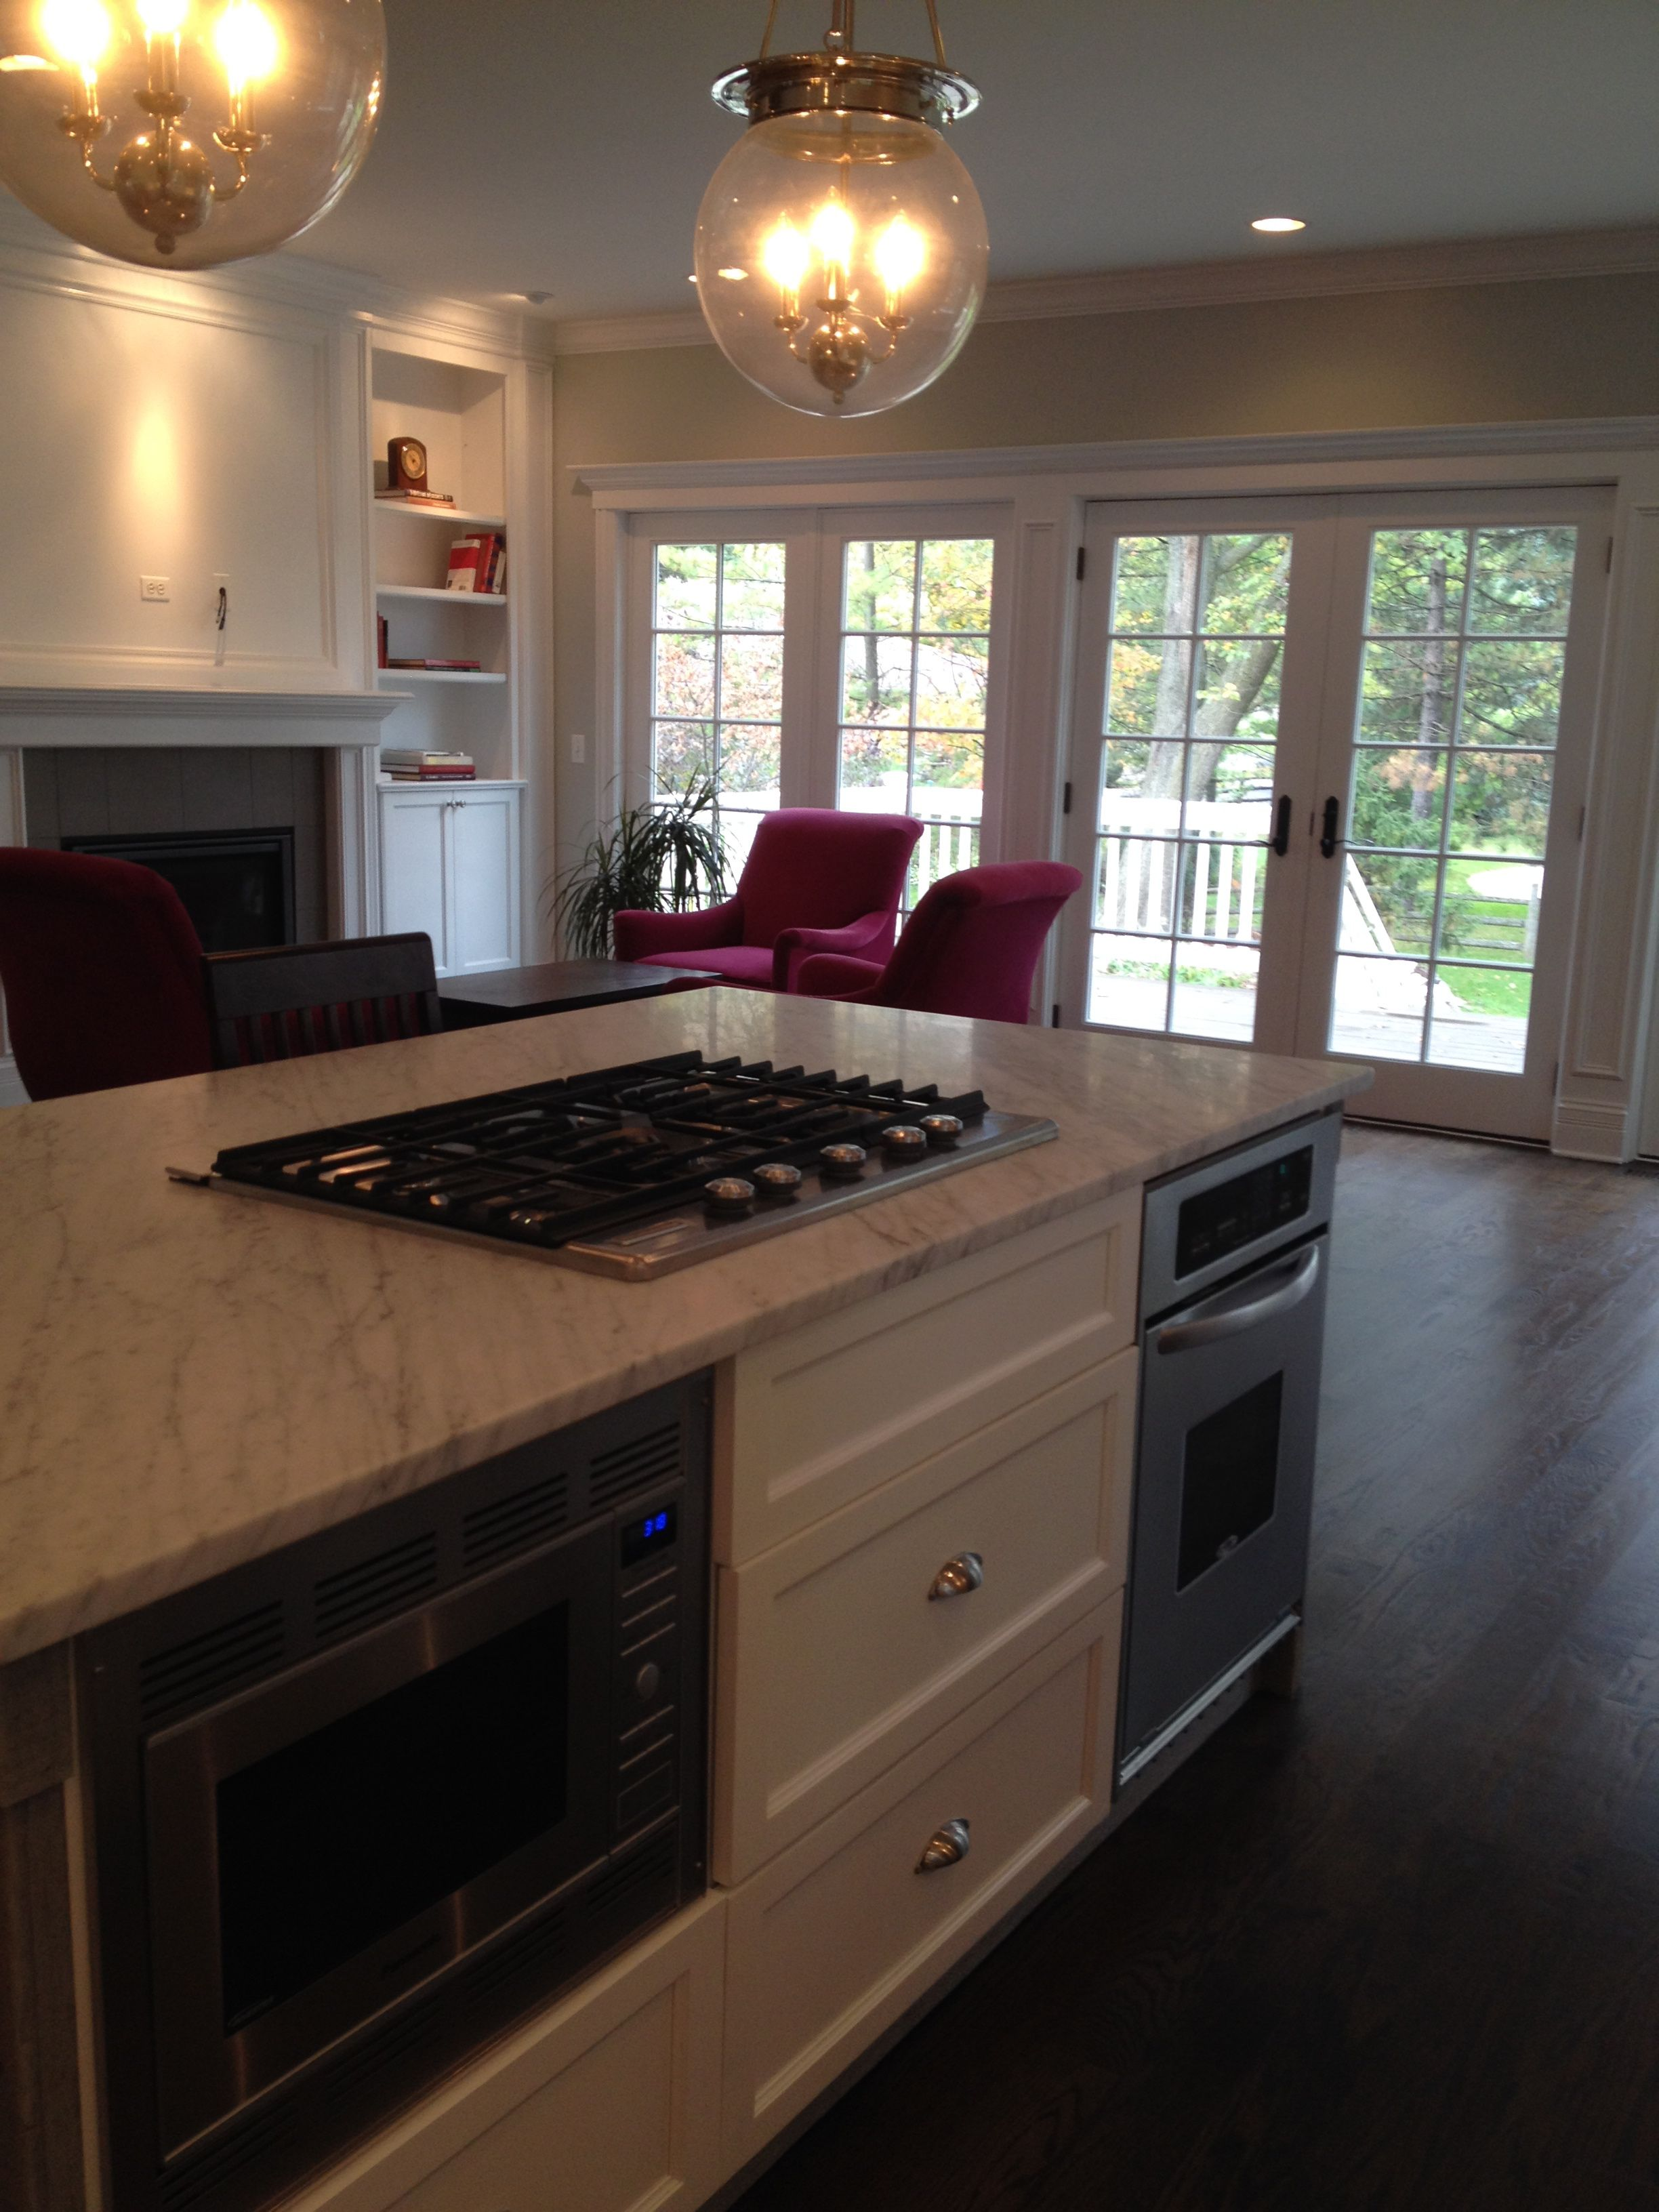 Kitchen Island Design With Oven Kitchen Island With Carrara Marble Countertop Gas Cooktop 2nd Oven